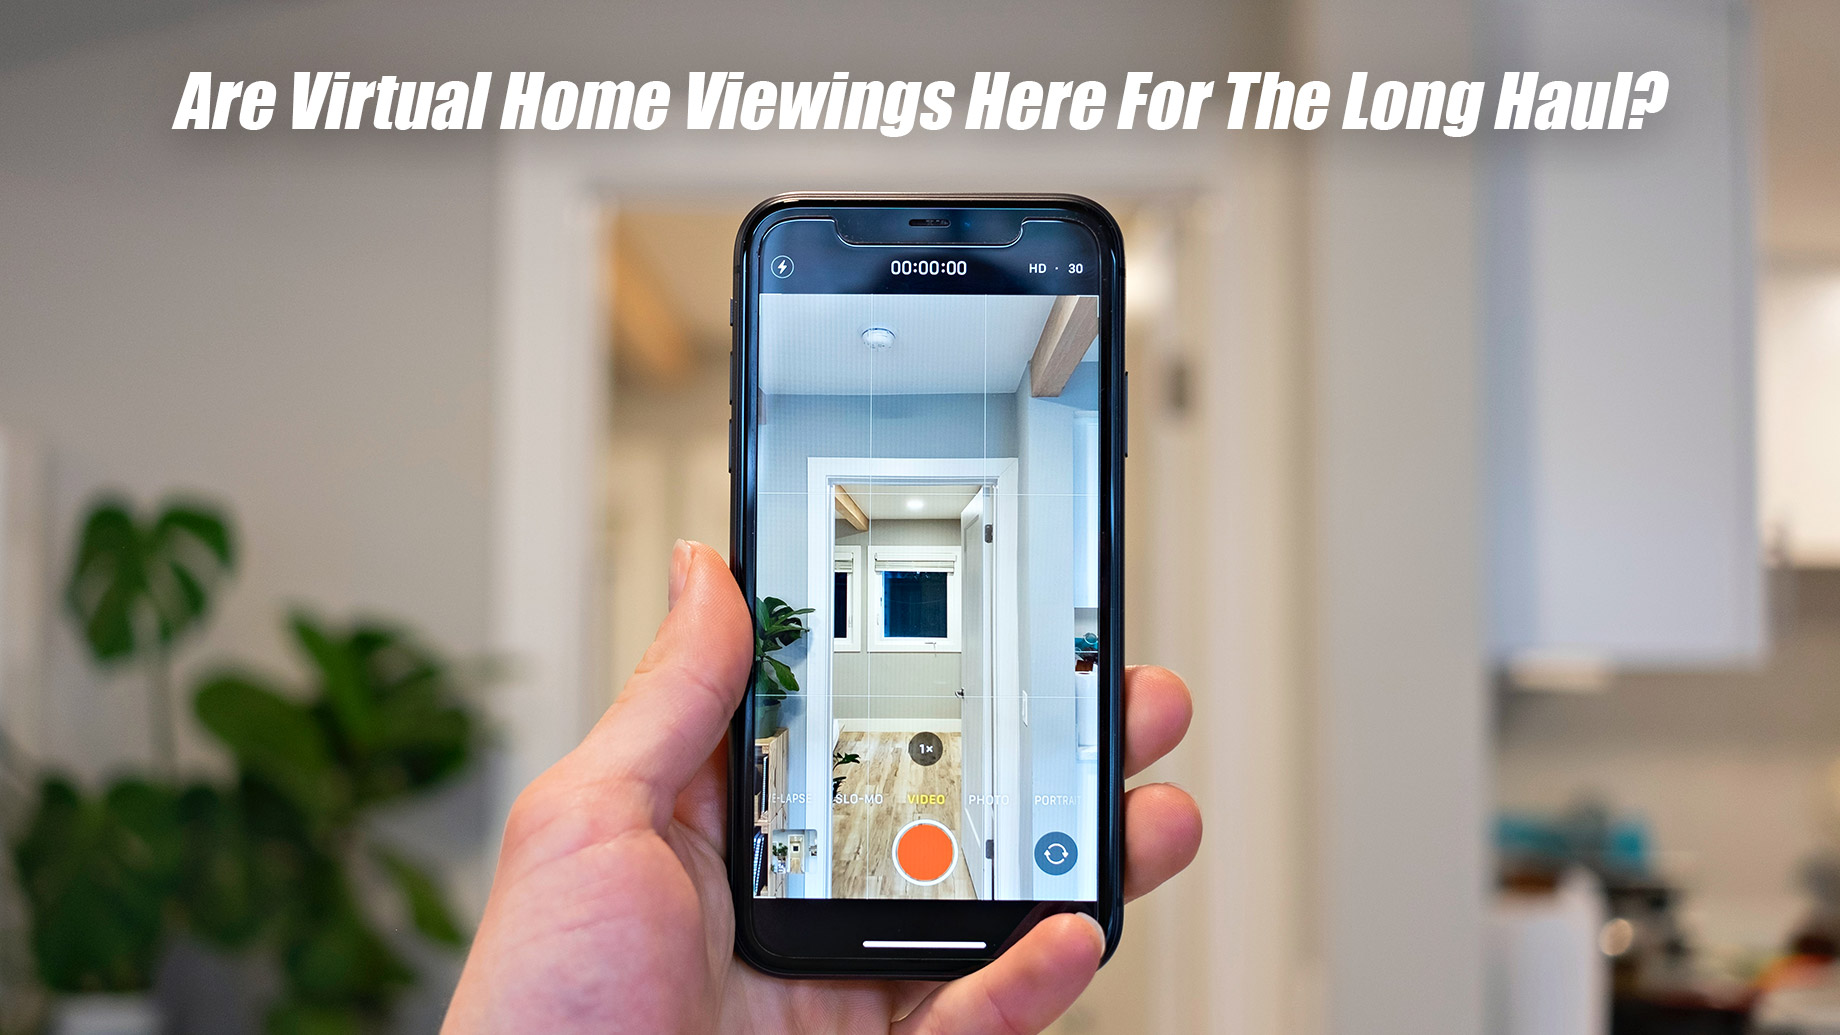 Are Virtual Home Viewings Here For The Long Haul?